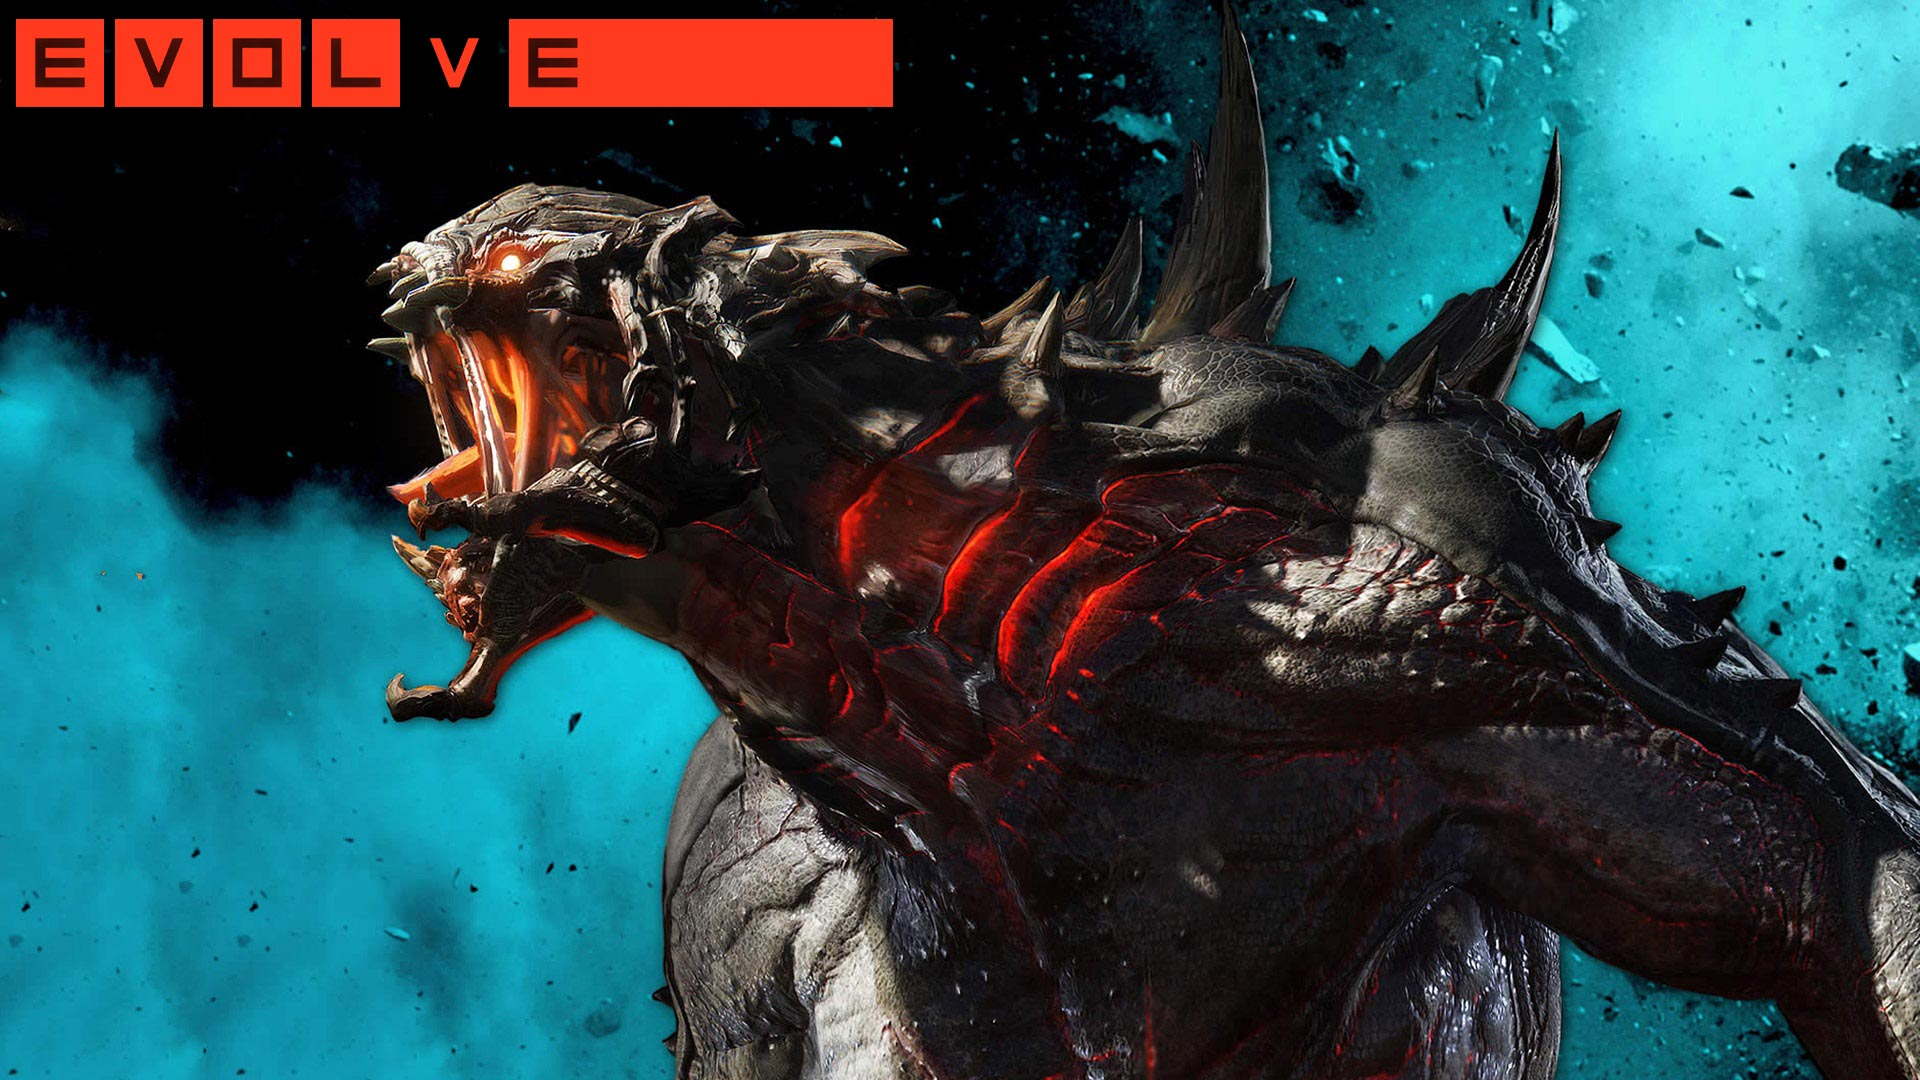 Evolve Wallpapers Community Content 1920x1080